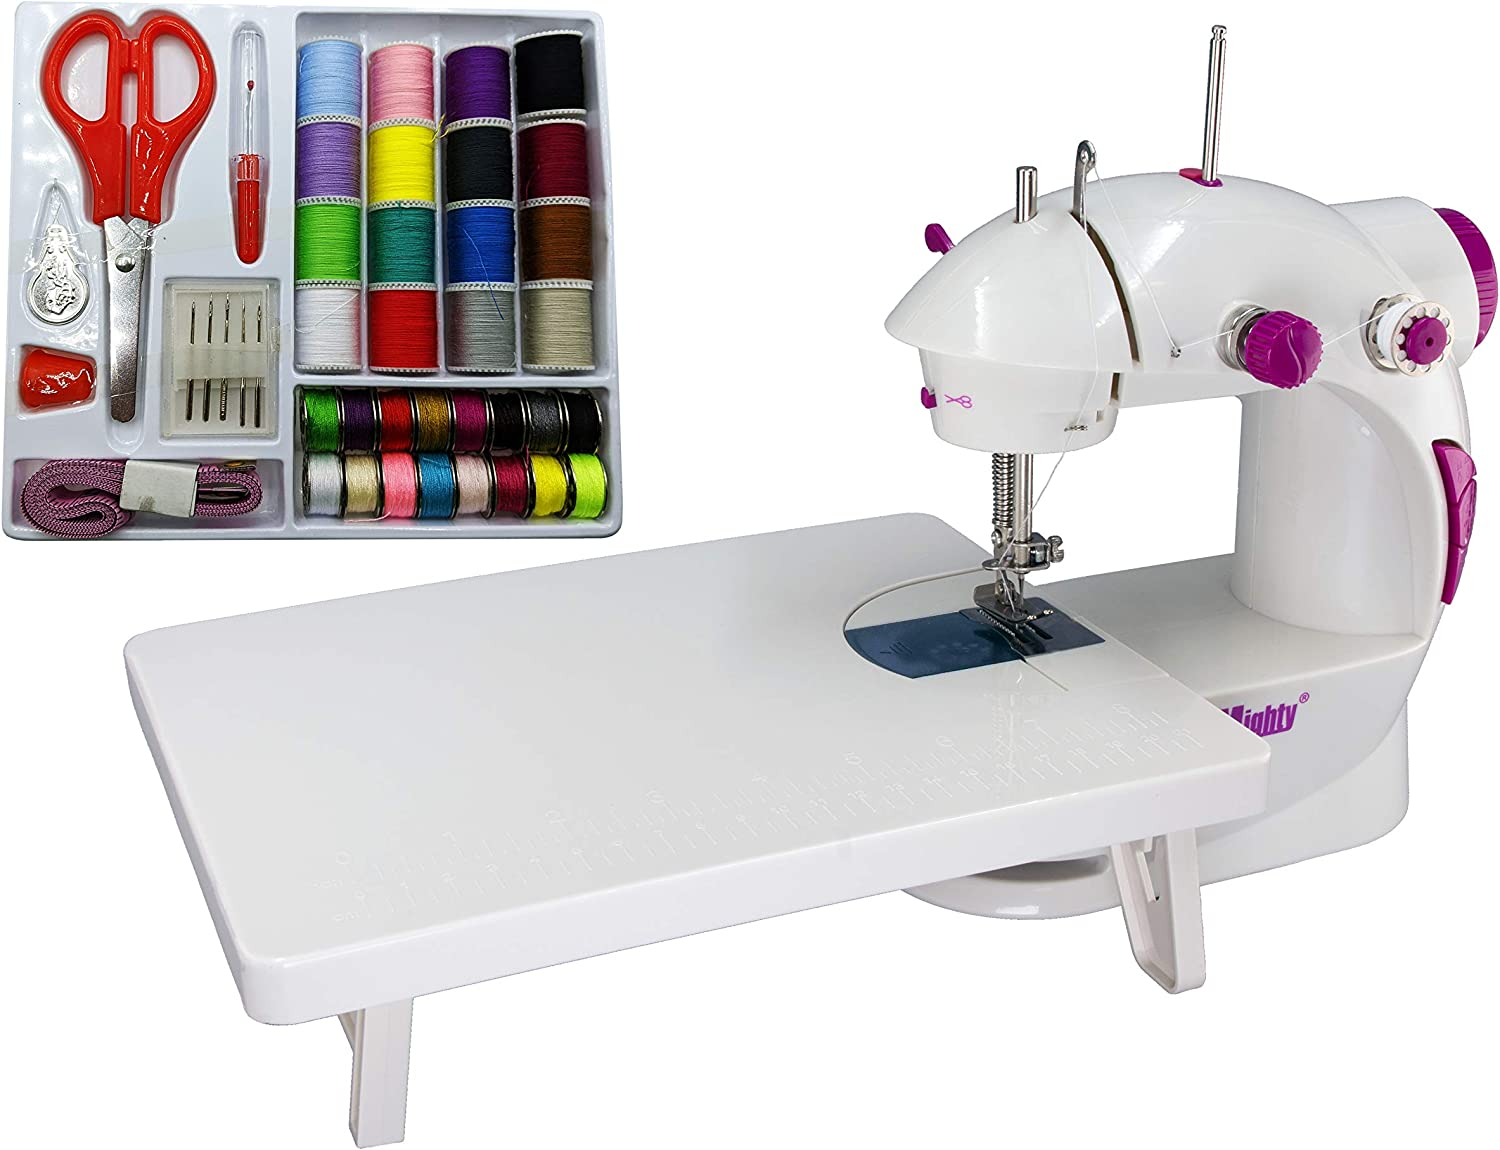 Sew 5 ☆ popular Mighty The Original Portable Perfect Machines Sewing – Limited time sale